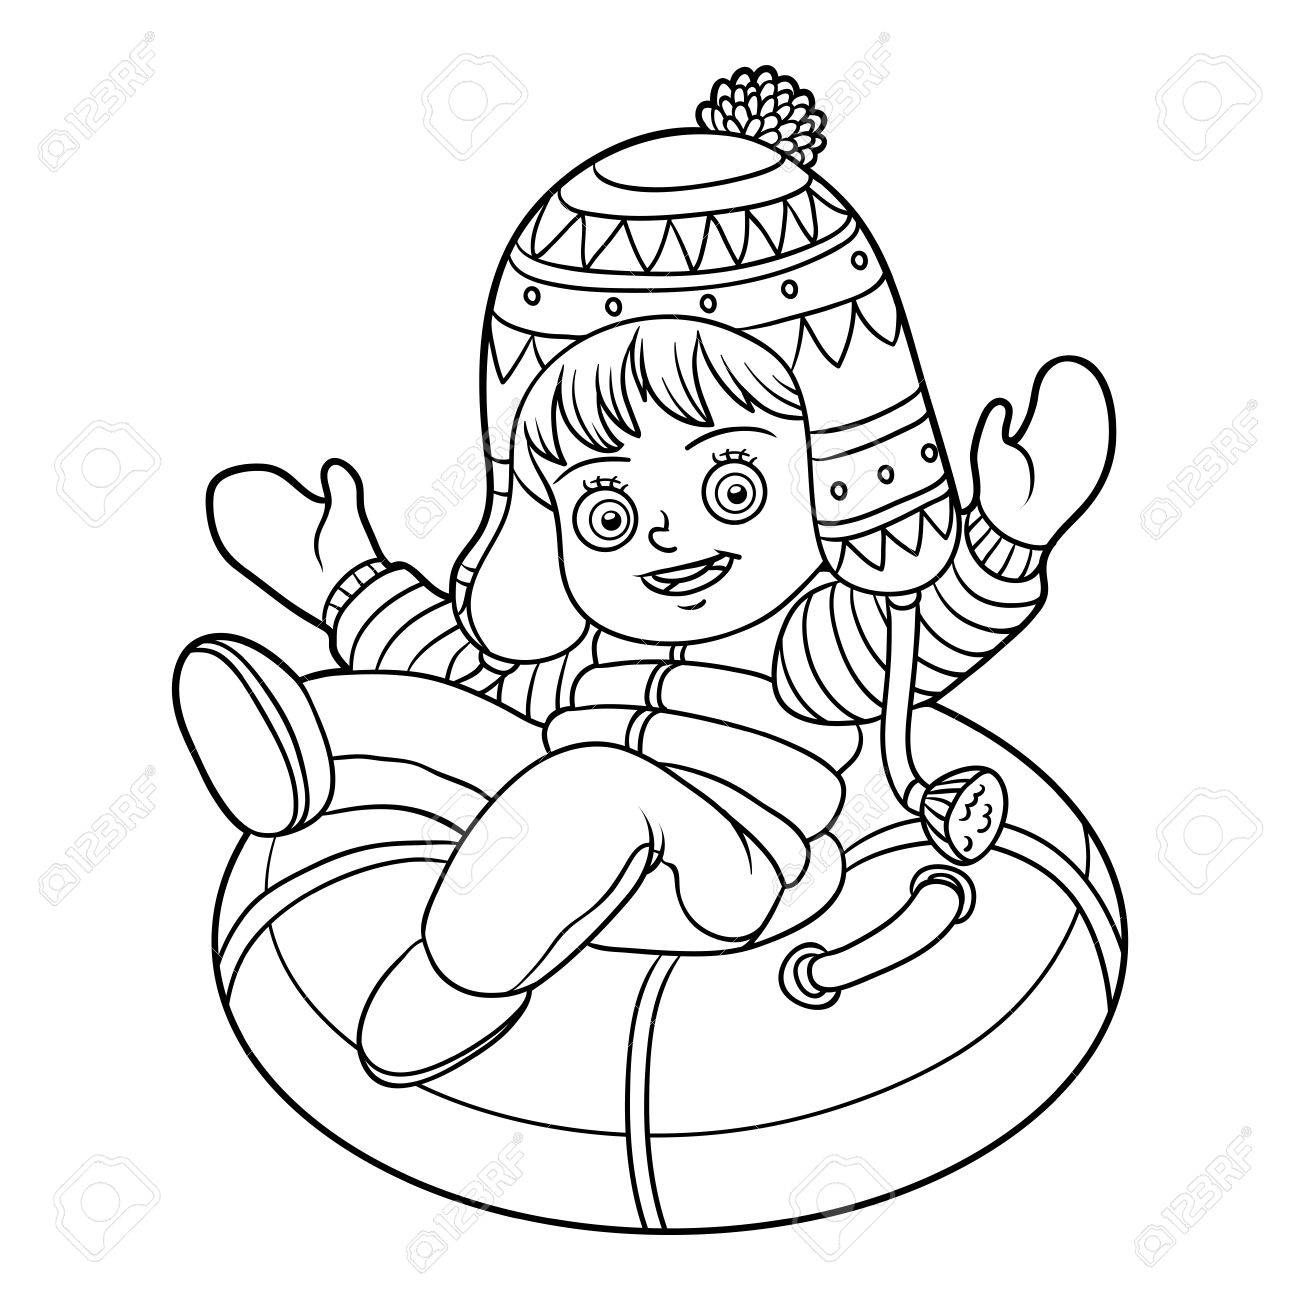 1300x1300 Coloring Book For Children, Happy Girl Riding On The Tubing